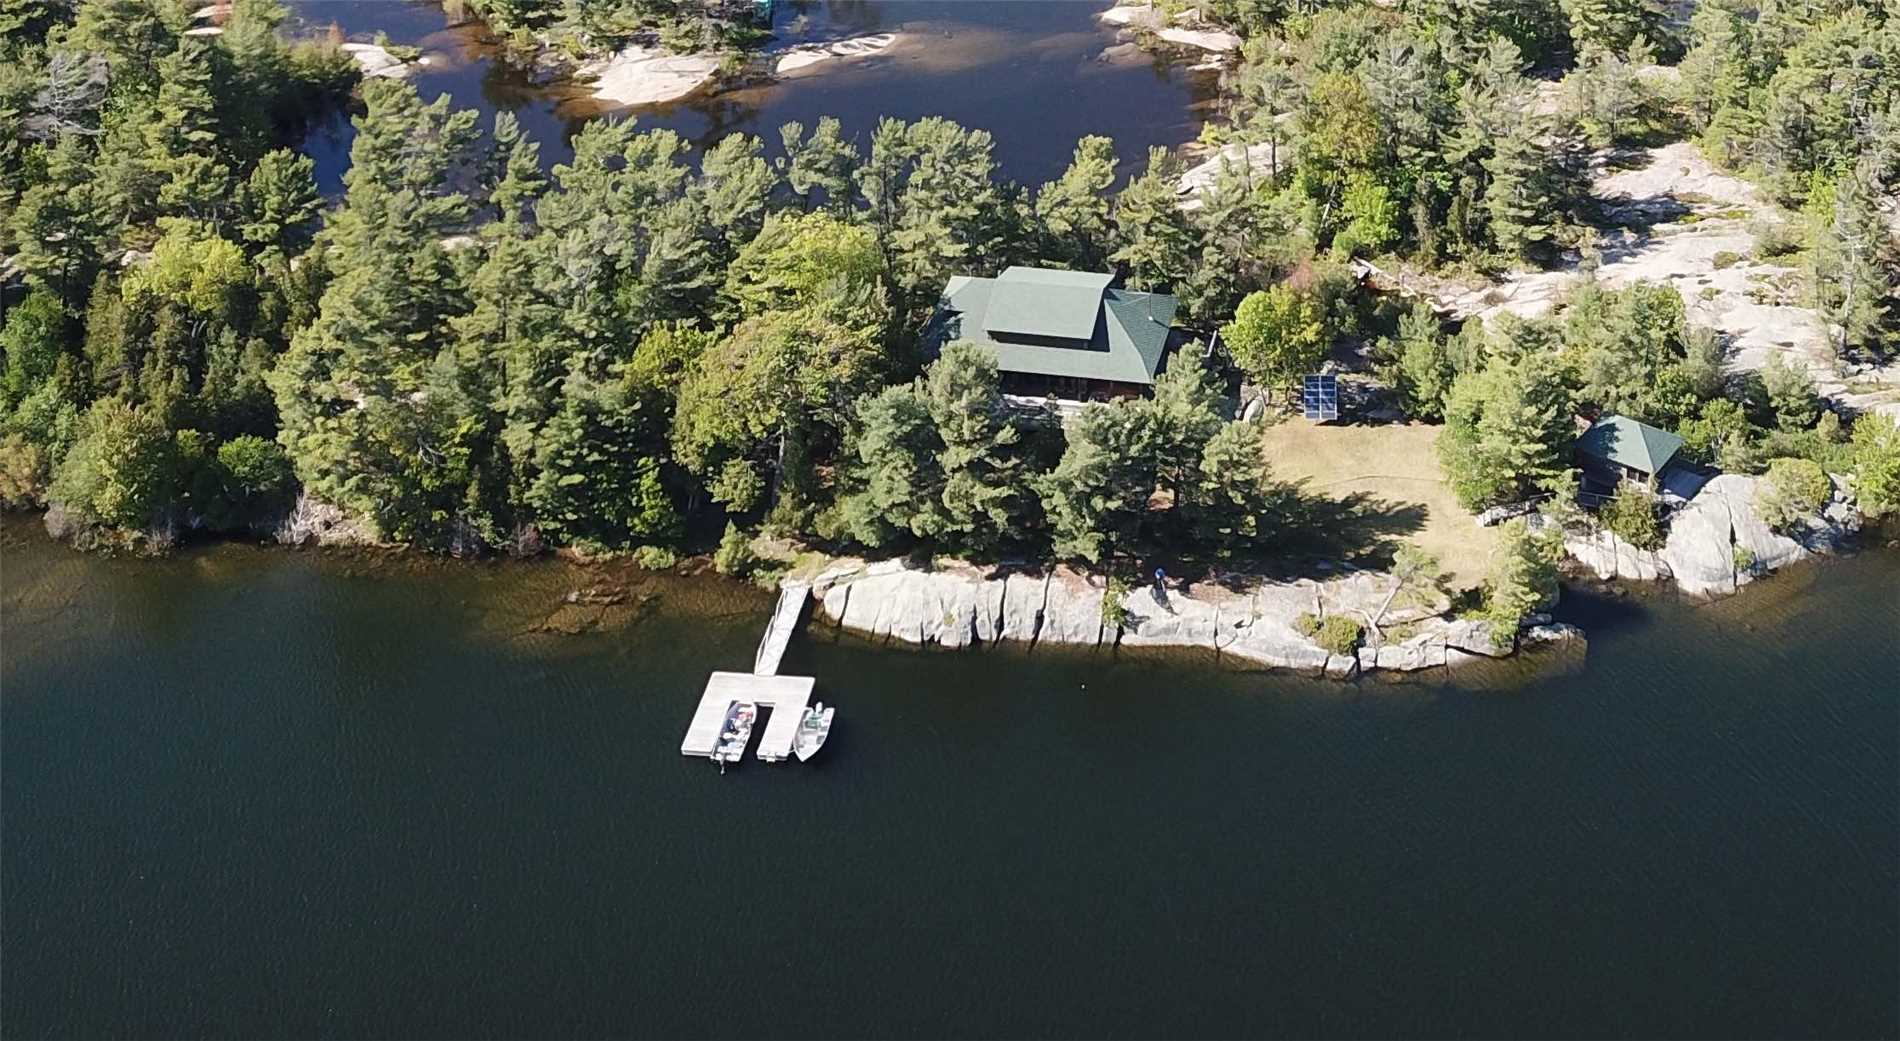 Newly Built 2008 Cottage By Stark Ireland Architects, Covered Porches, Decks & Views Across The Water To Undevelopable Natural State Shoreline In Private Oberlin Bay W/ No Boat Through Traffic. 1.3Ac Island In Pointe Au Baril's Georgian Bay Freshwater Granite & Pines Island Community, Famous Ojibway Club Close By, 15 Min Boat Ride To Marinas. 1 Bdrm Cabin On The Point W/ Washroom & Views From The Deck. At The Other End Of The Island, Find Posts For The